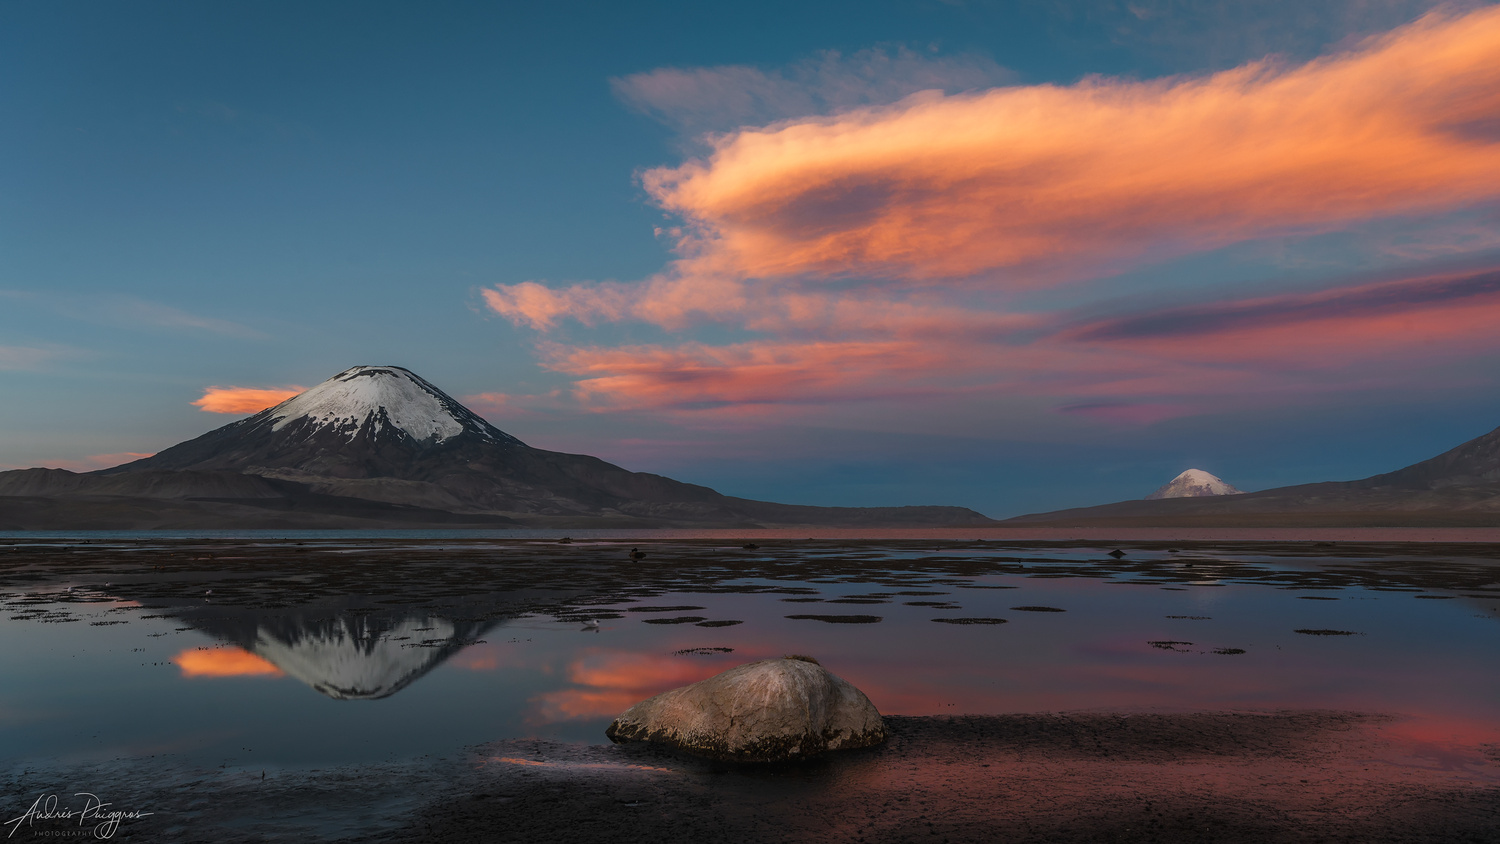 Parinacota volcano reflected in Chungará Lake by Andres Puiggros